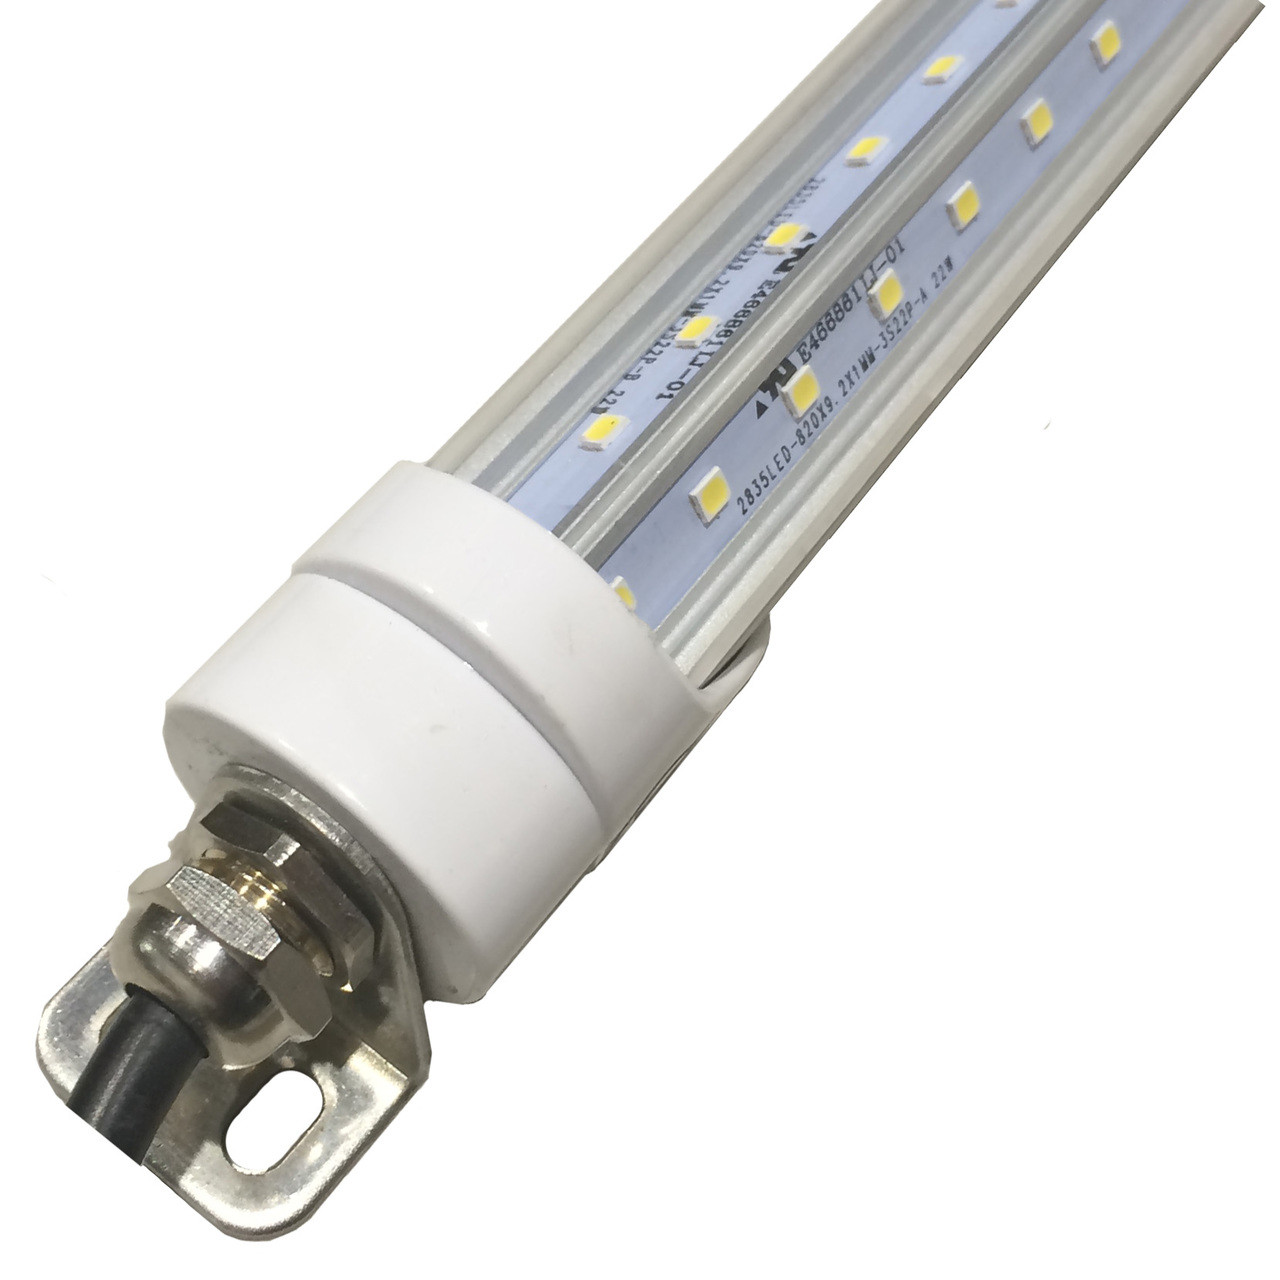 medium resolution of t8 led freezer cooler six foot tube to replace florescent s led wiring diagram for t8 6 bulb led light